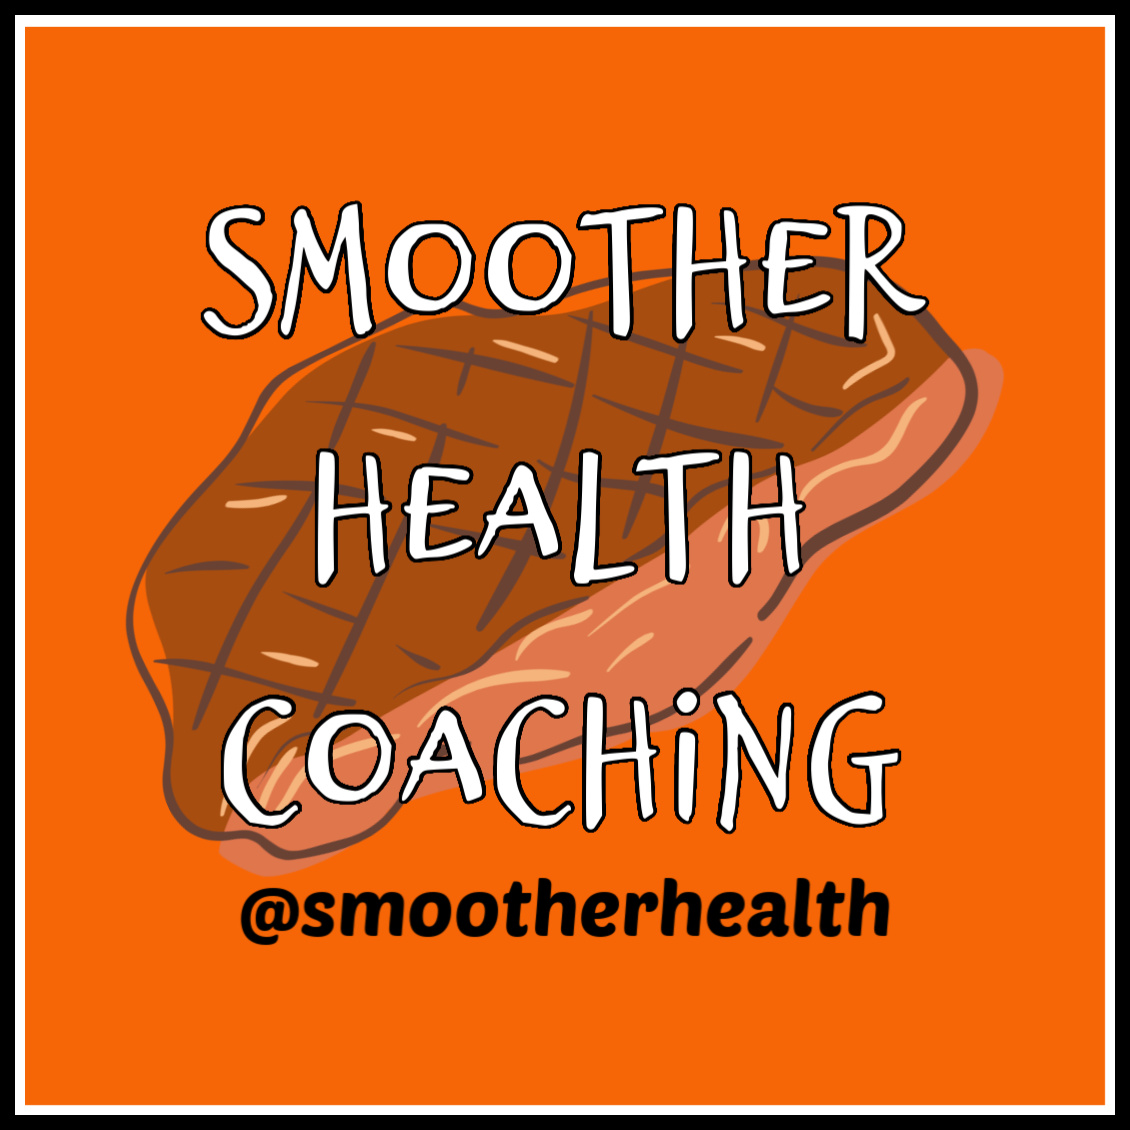 Smoother Health Coaching